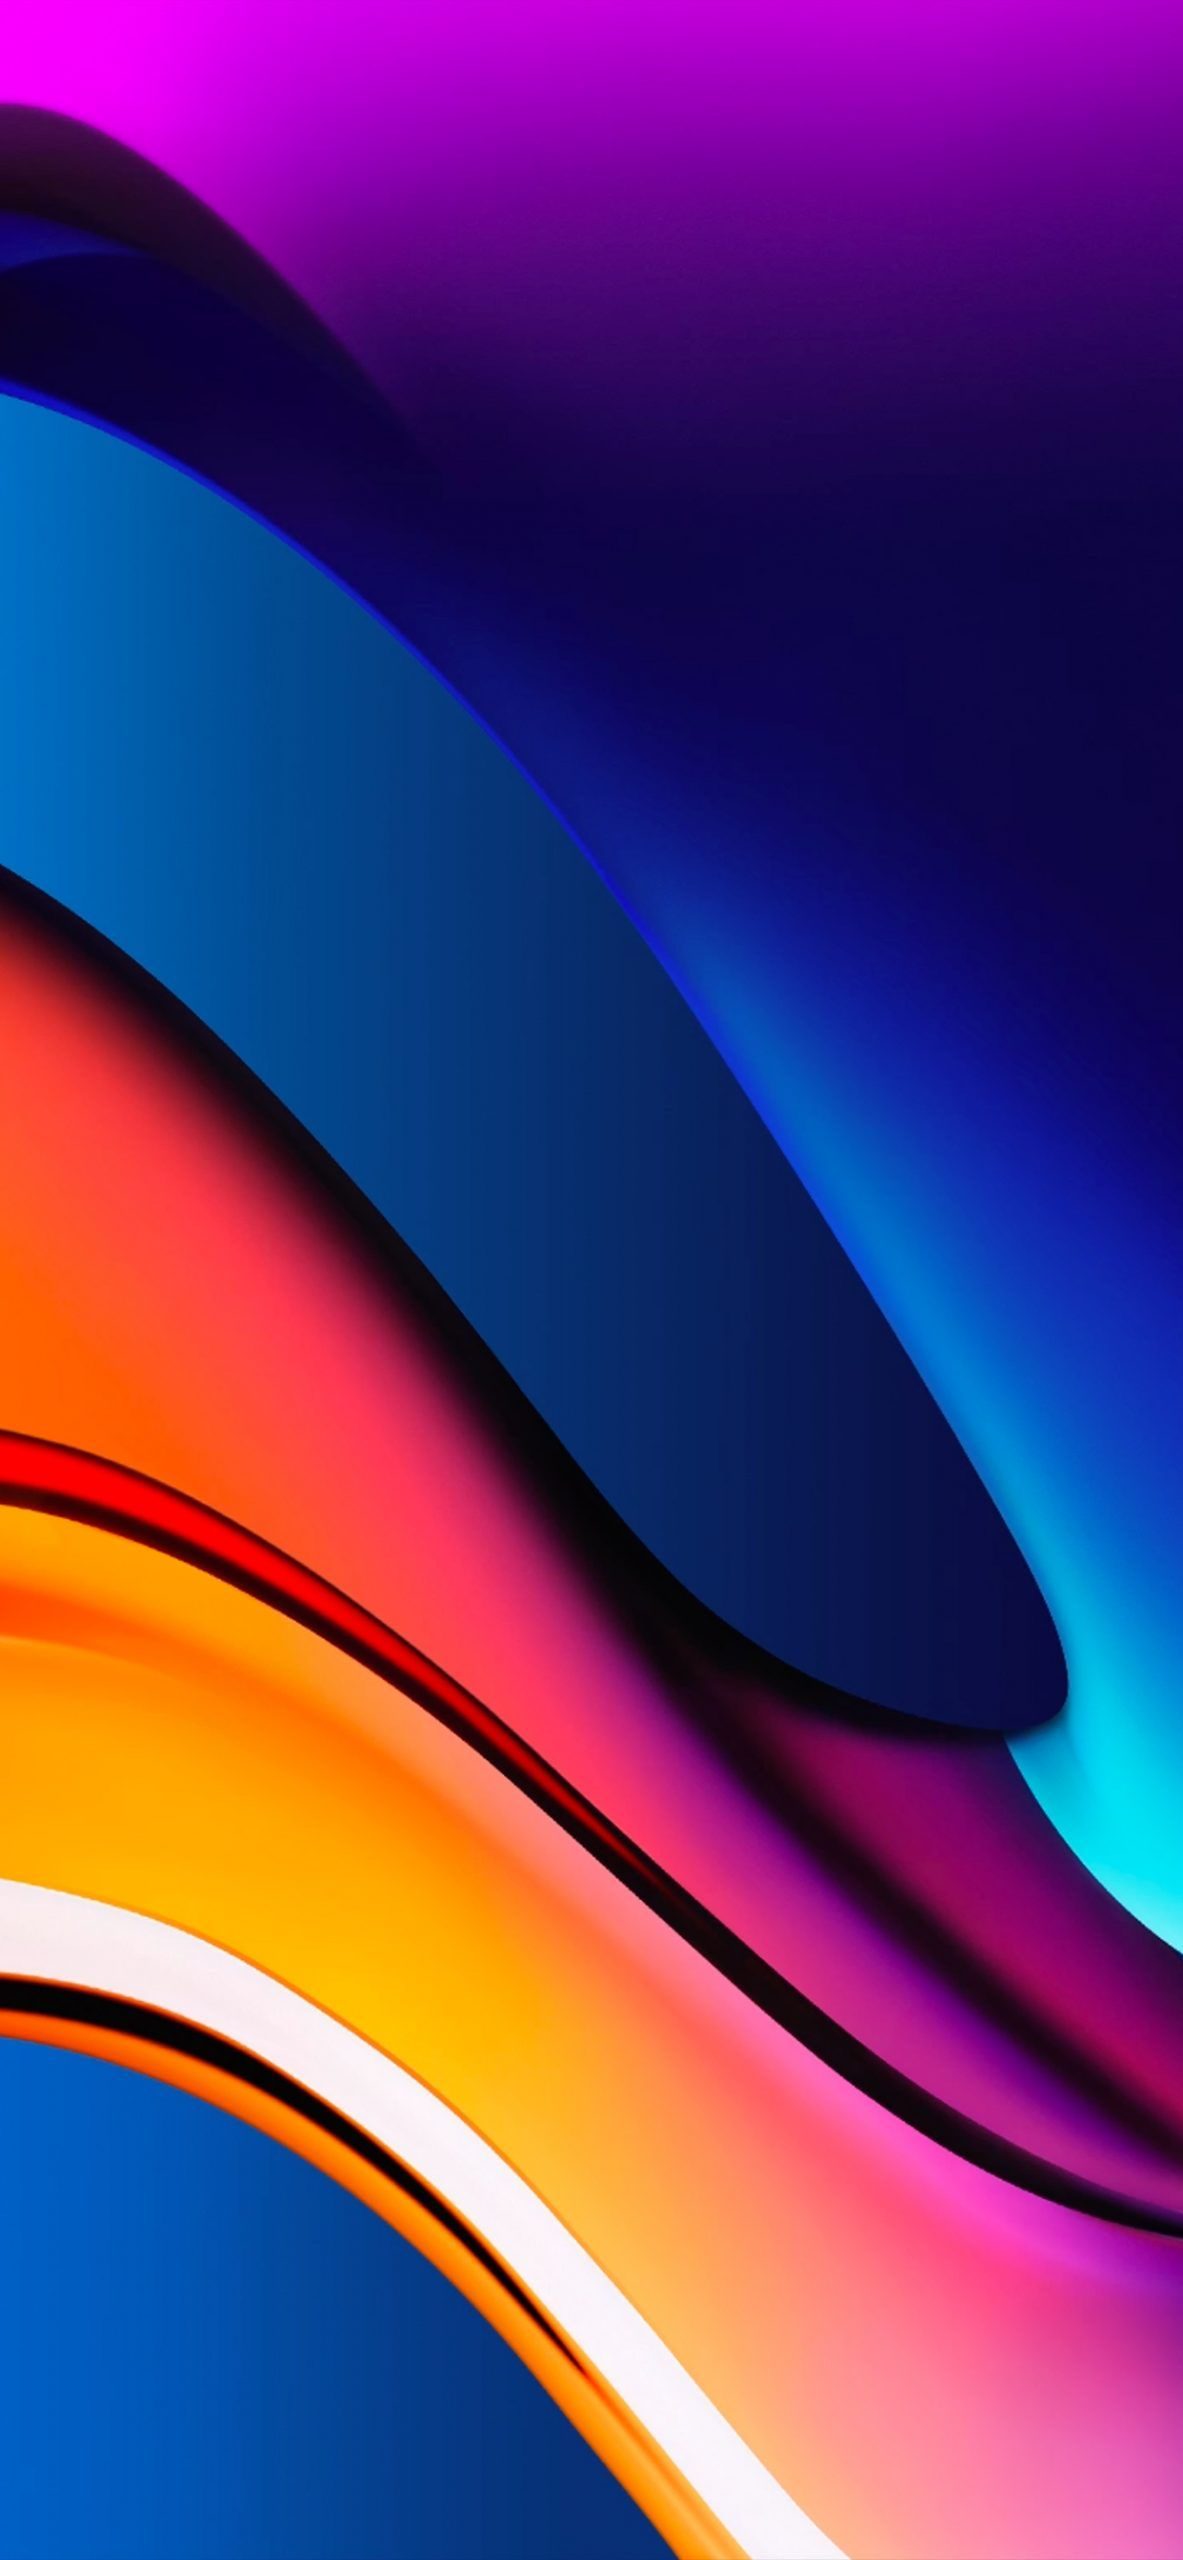 Summer gradient swoosh by Hk3ToN on Twitter in 2020 Hd